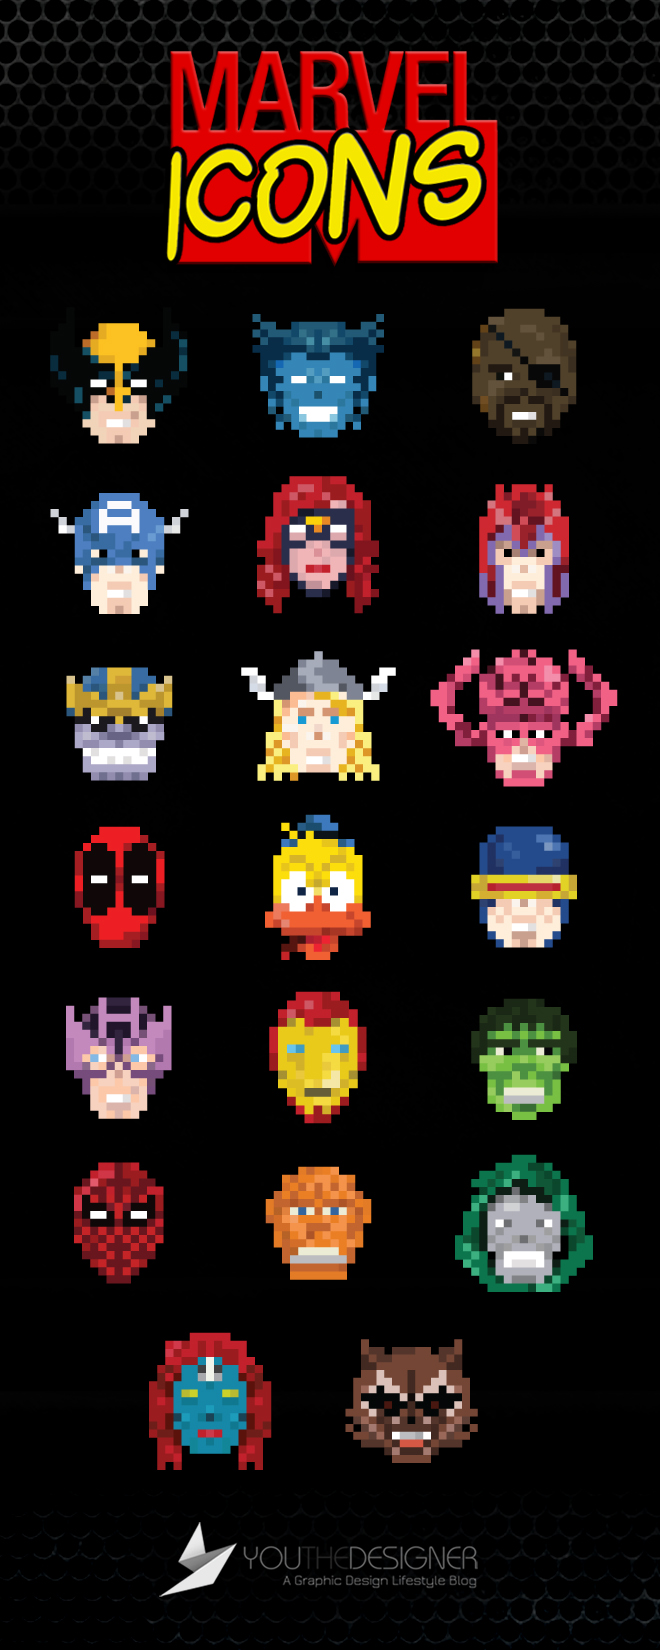 pixelated marvel icons